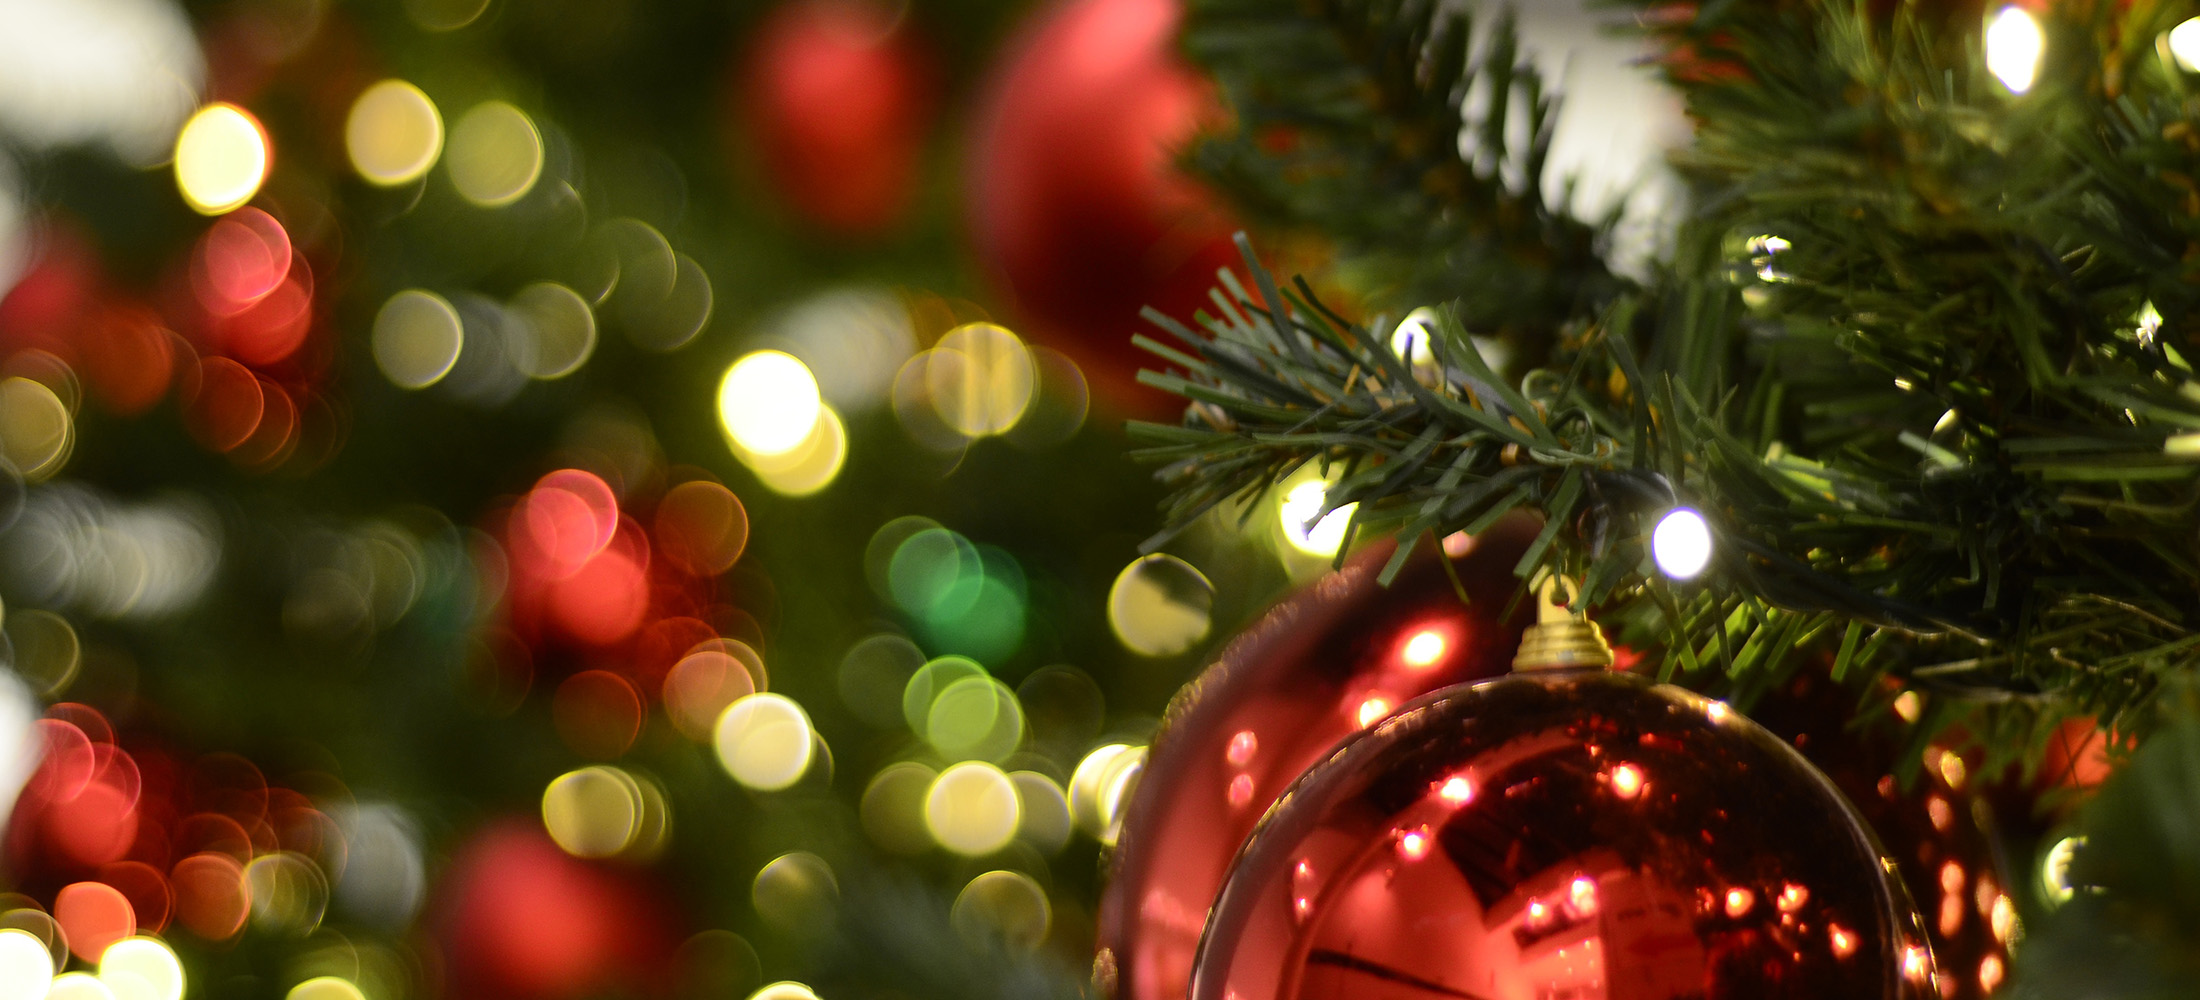 christmas-tree-wide-crop.jpg